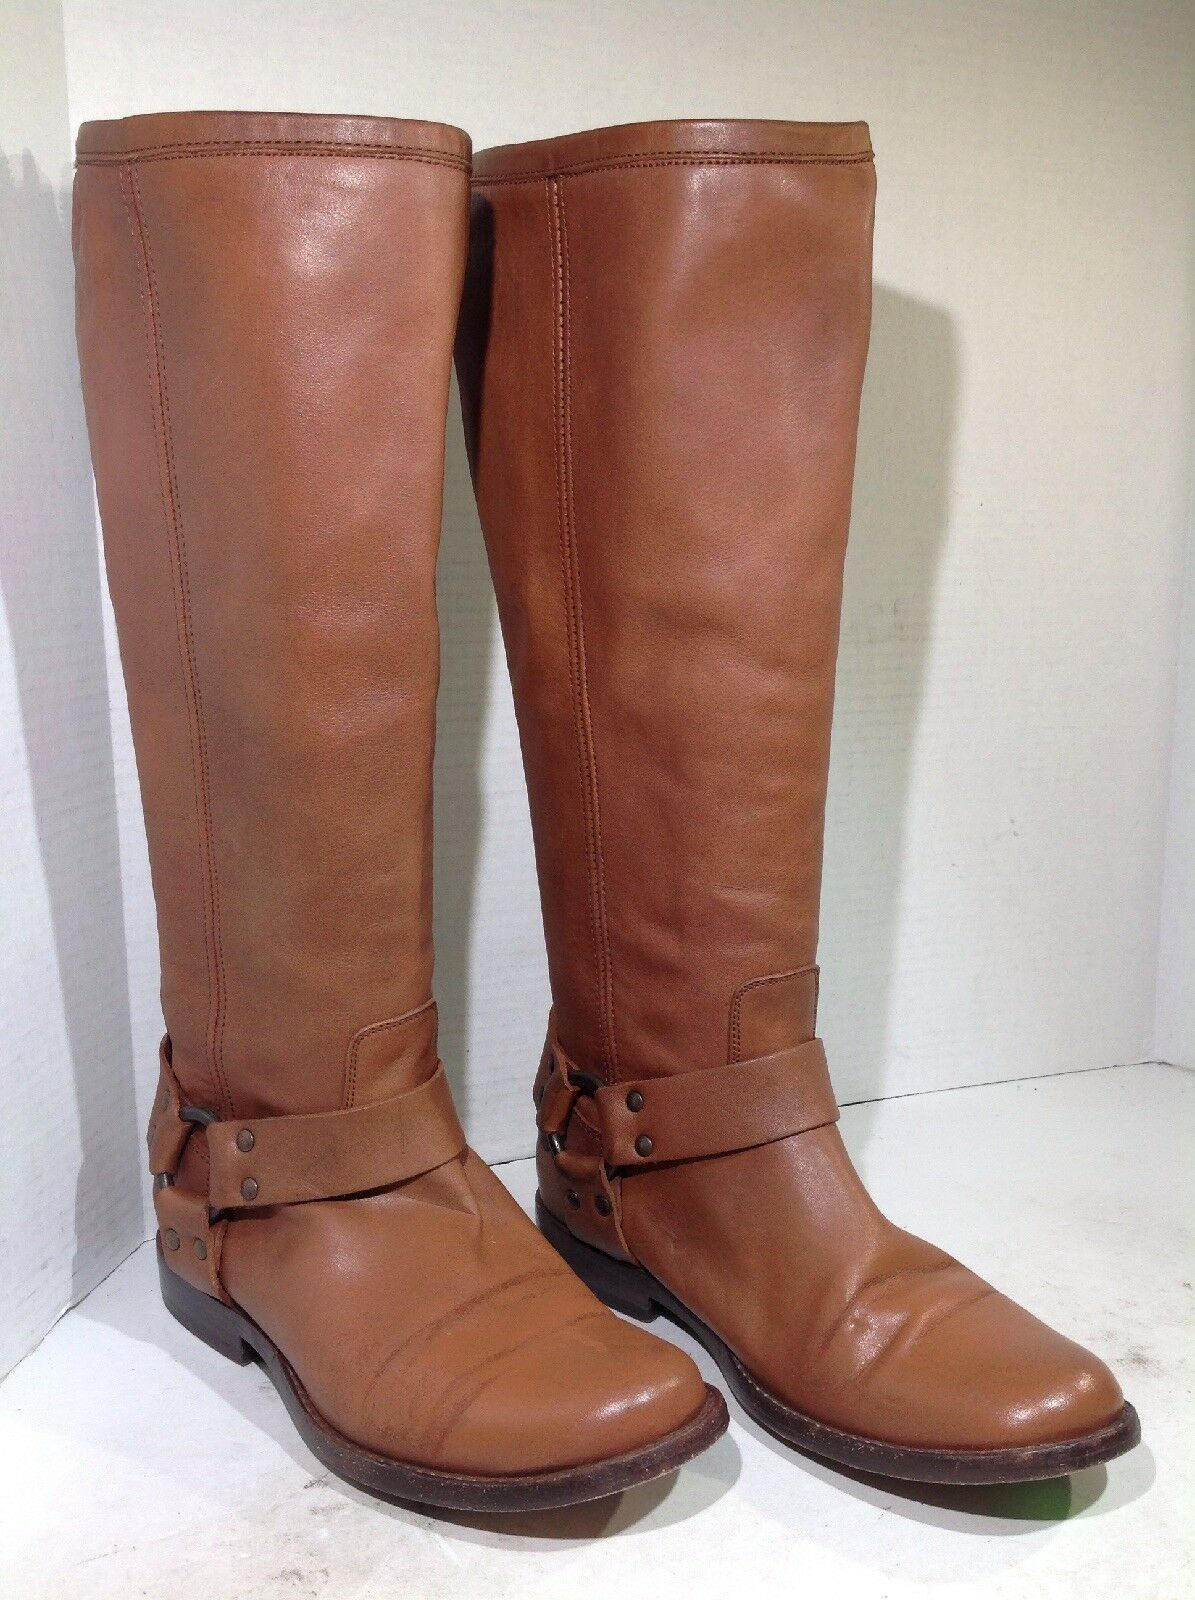 Frye Women's Size 6 Phillip Harness Tall Brown Leather Riding Boots  378 FB2-107